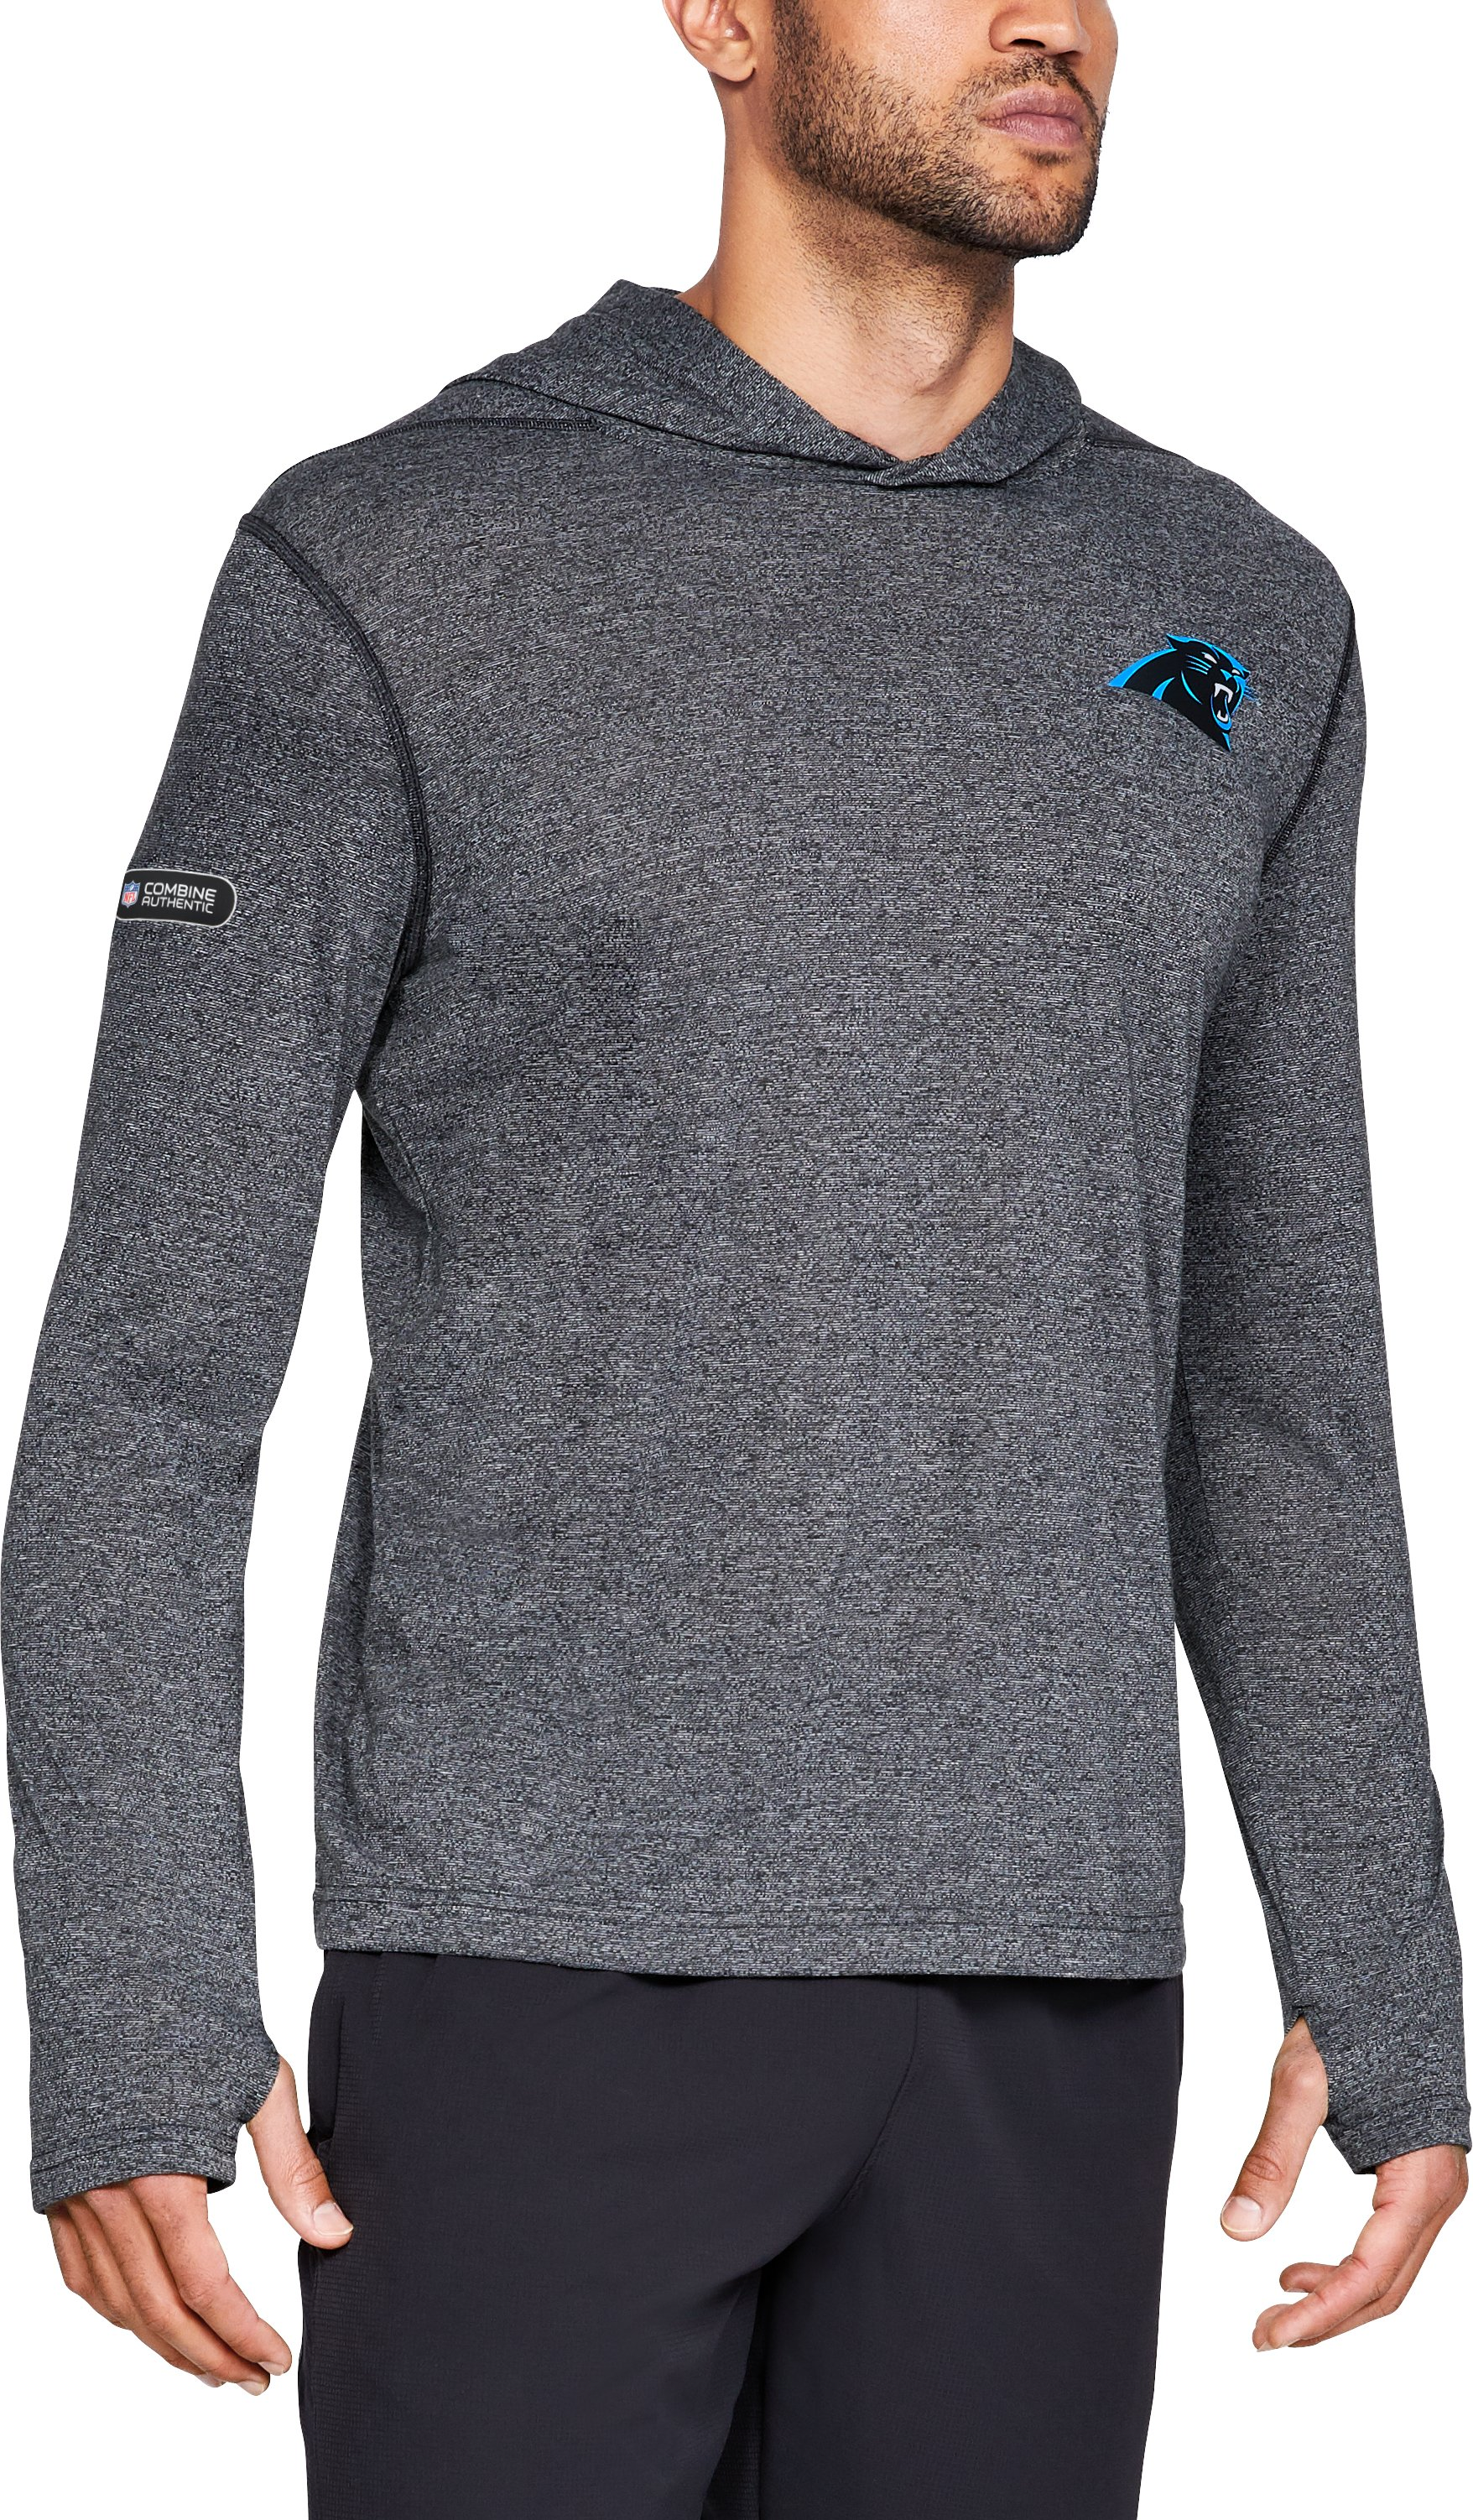 Men's NFL Combine Authentic UA  Siro Popover Hoodie, NFL_Carolina Panthers_Black